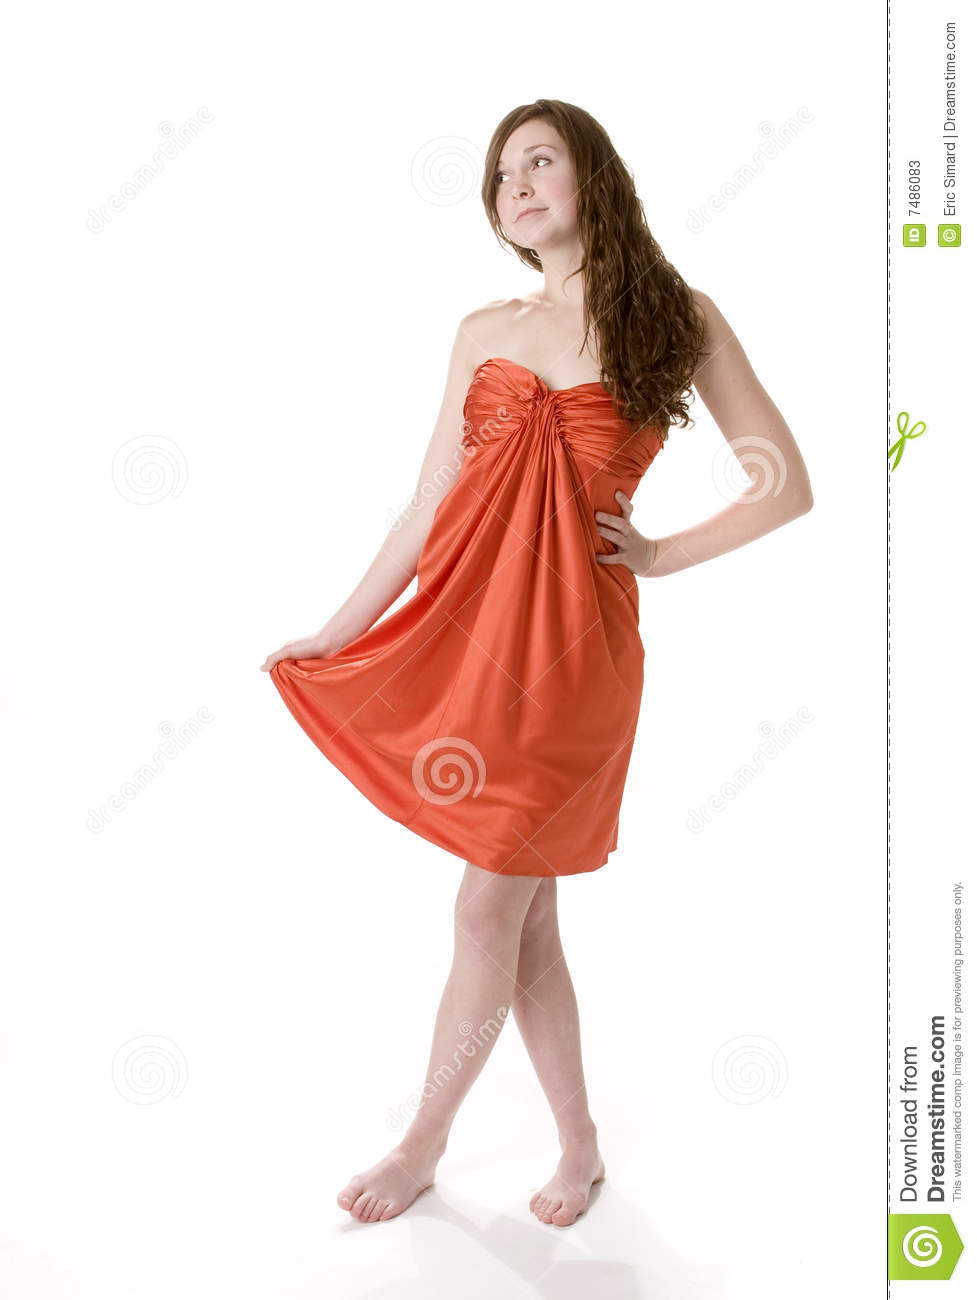 Teenage Girl In Orange Dress Stock Photos - Image: 7486083